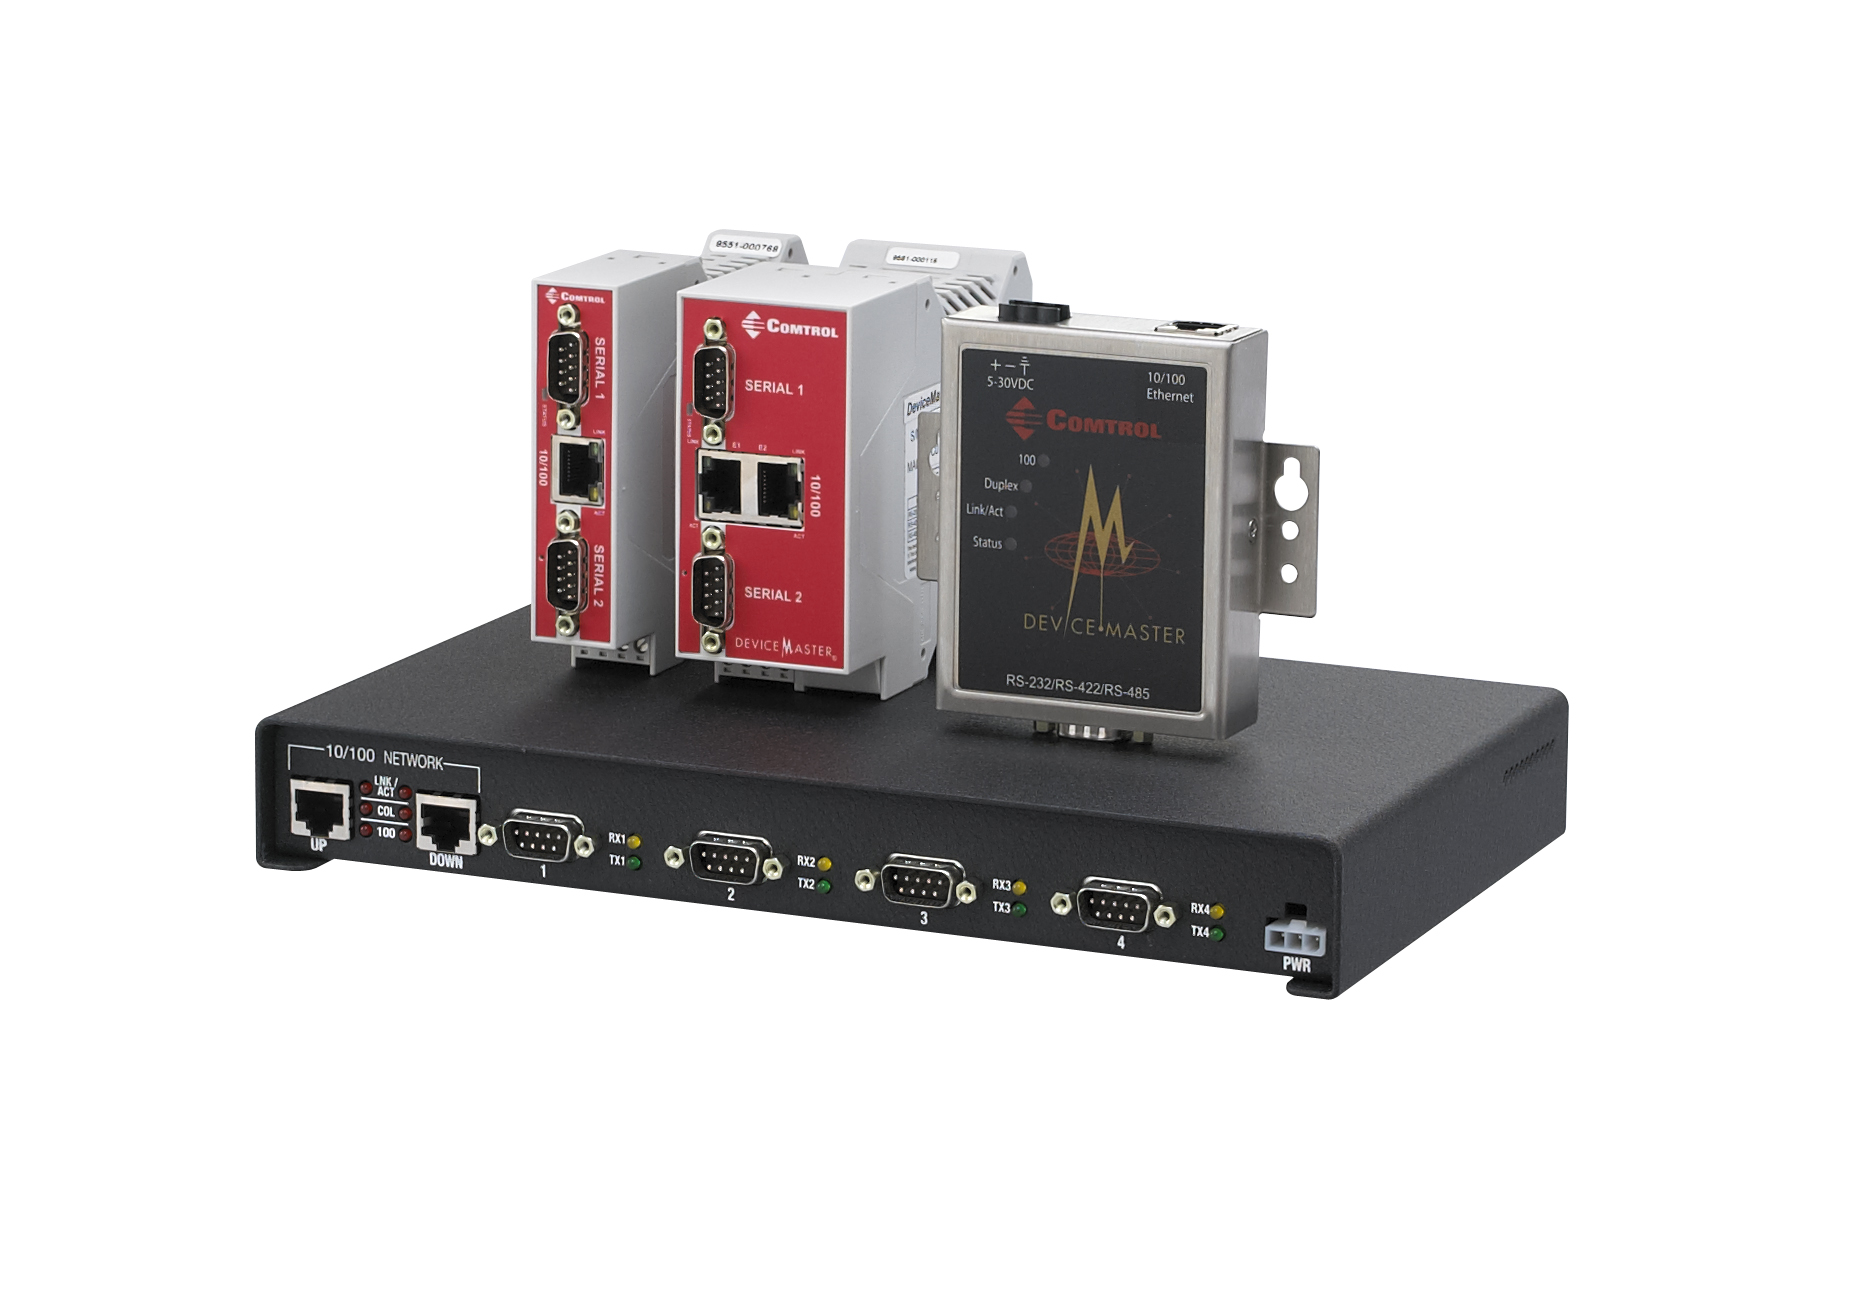 DeviceMaster UP industrial ethernet gateway